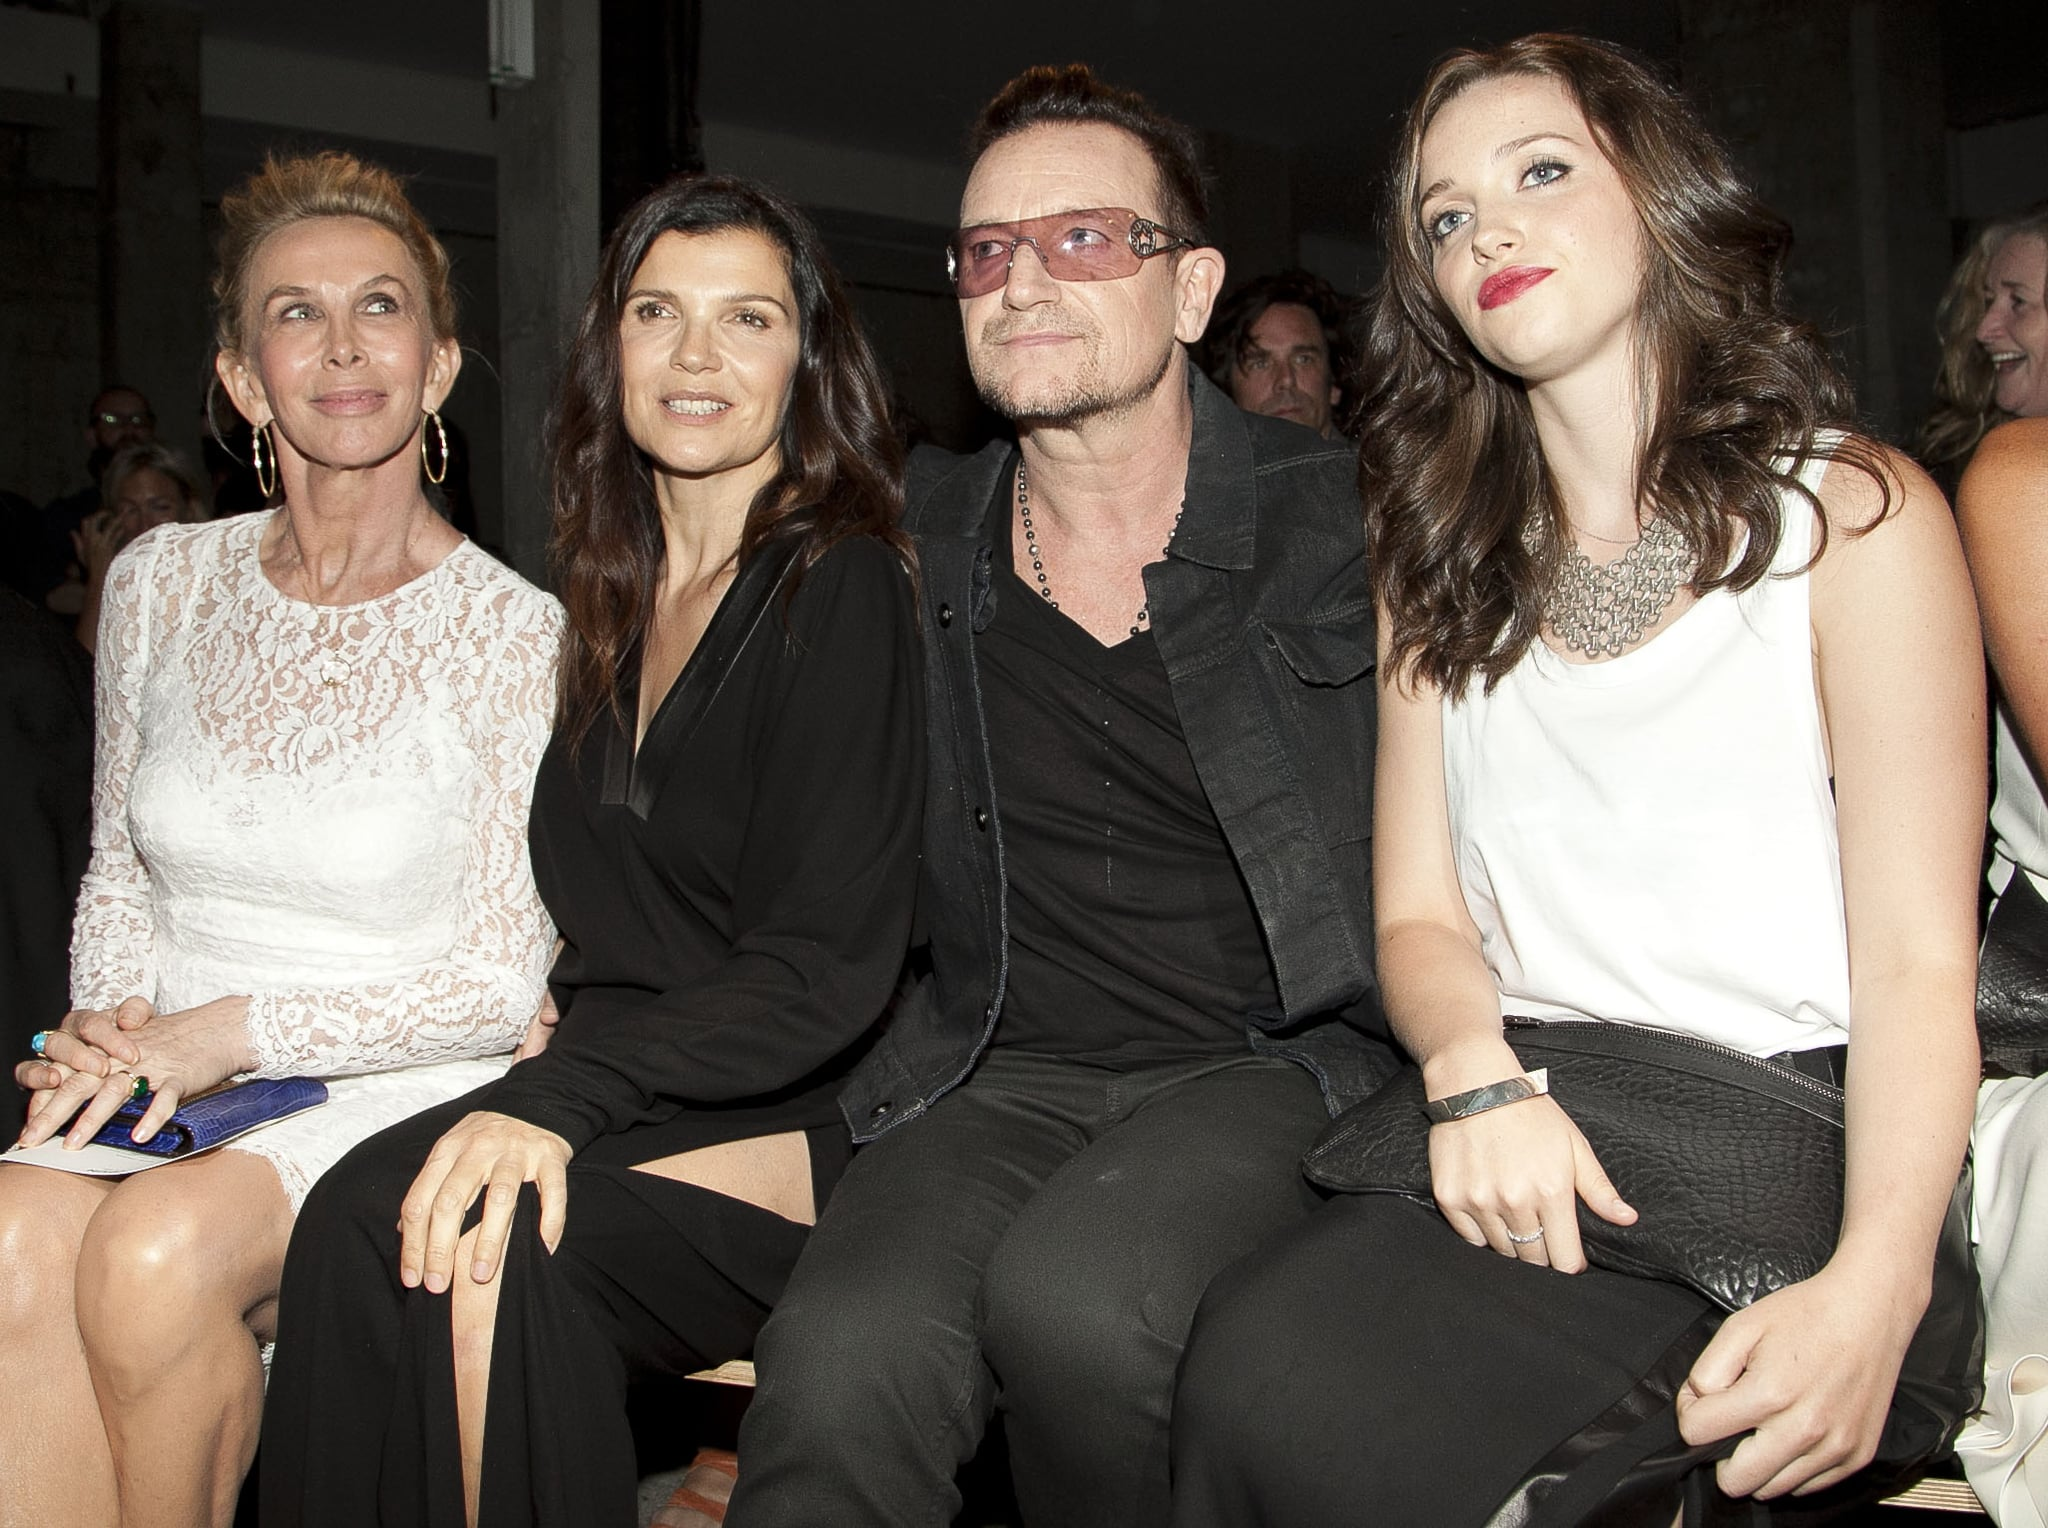 Bono was joined by his wife Alison Hewson, daughter, Eve, and friend Trudie Styler for the Edun show on Sunday.